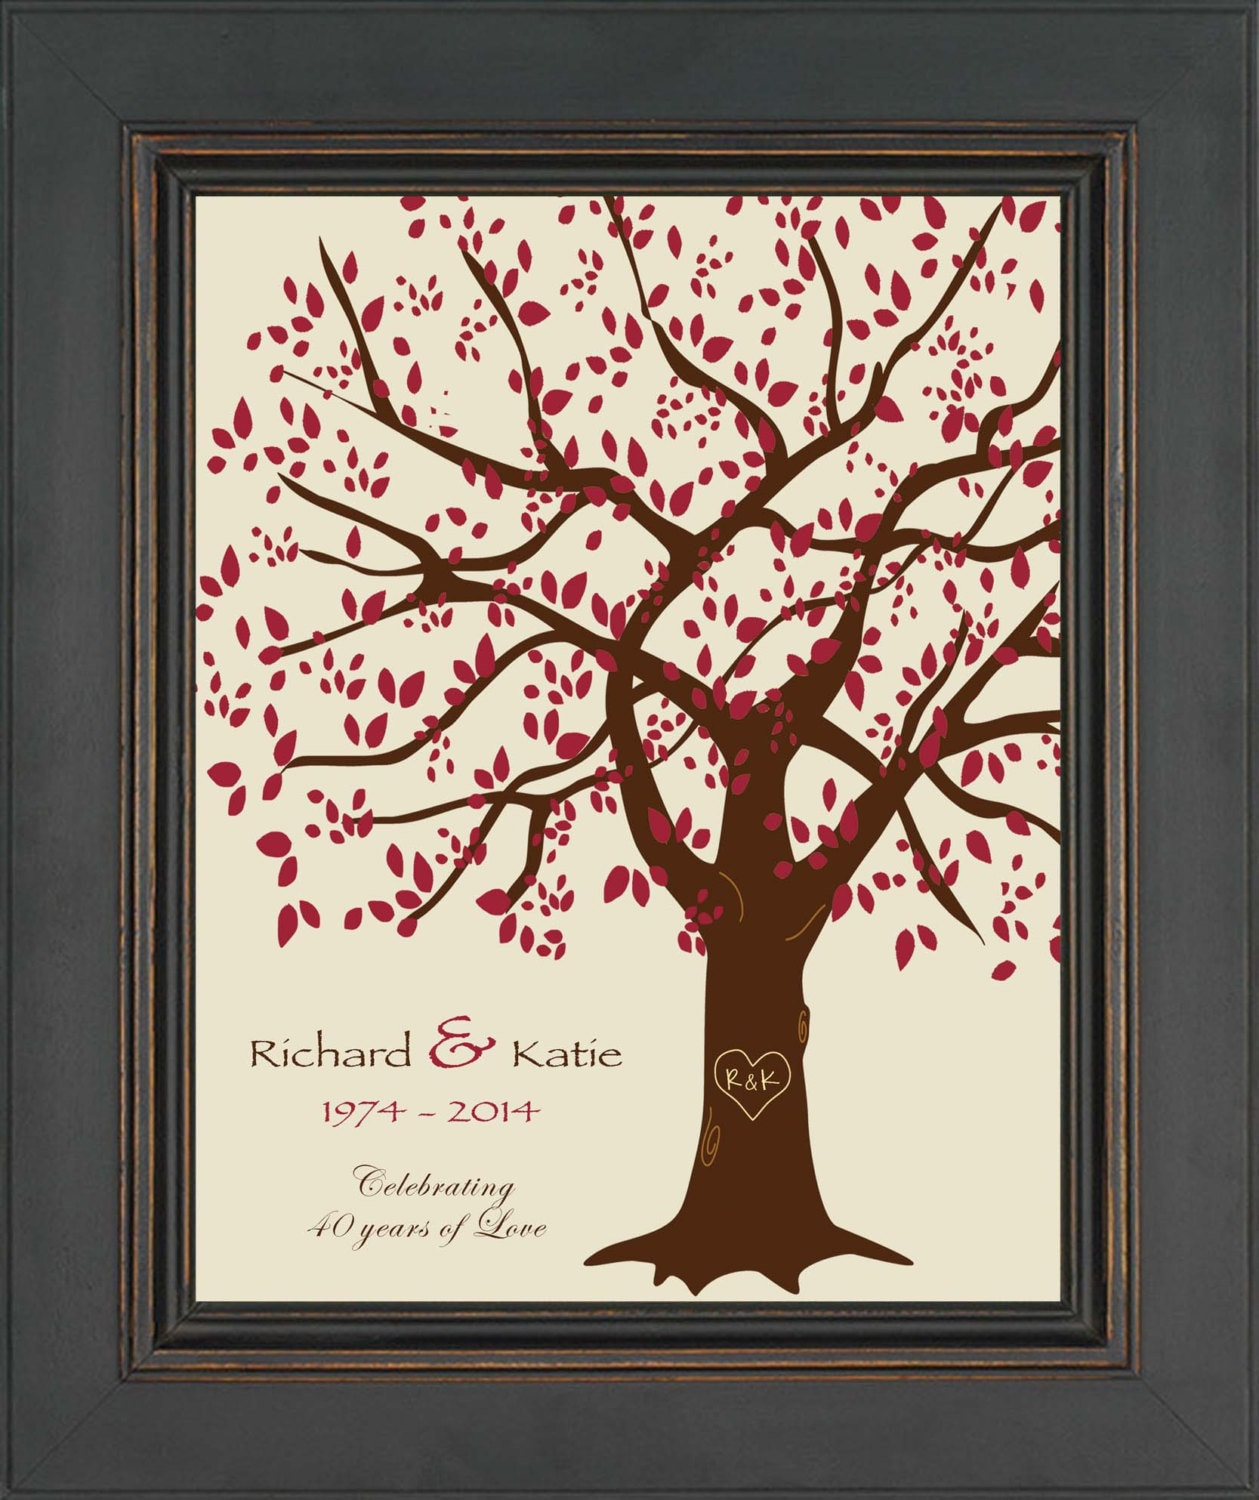 Wedding Gift Parents: 40th Anniversary Gift For Parents 40th Ruby Anniversary